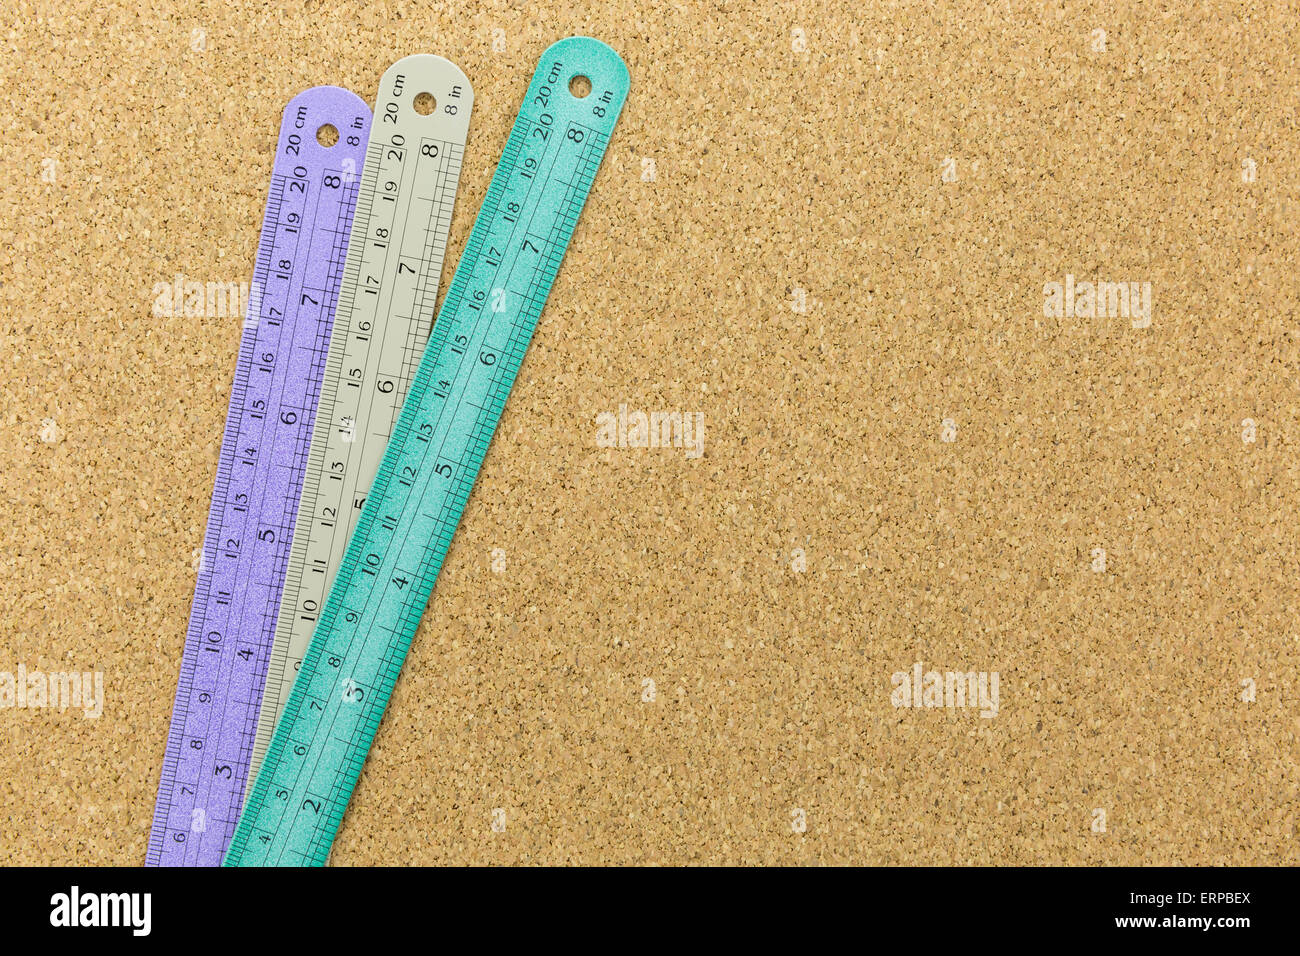 three color of rulers place on cork board with space - Stock Image